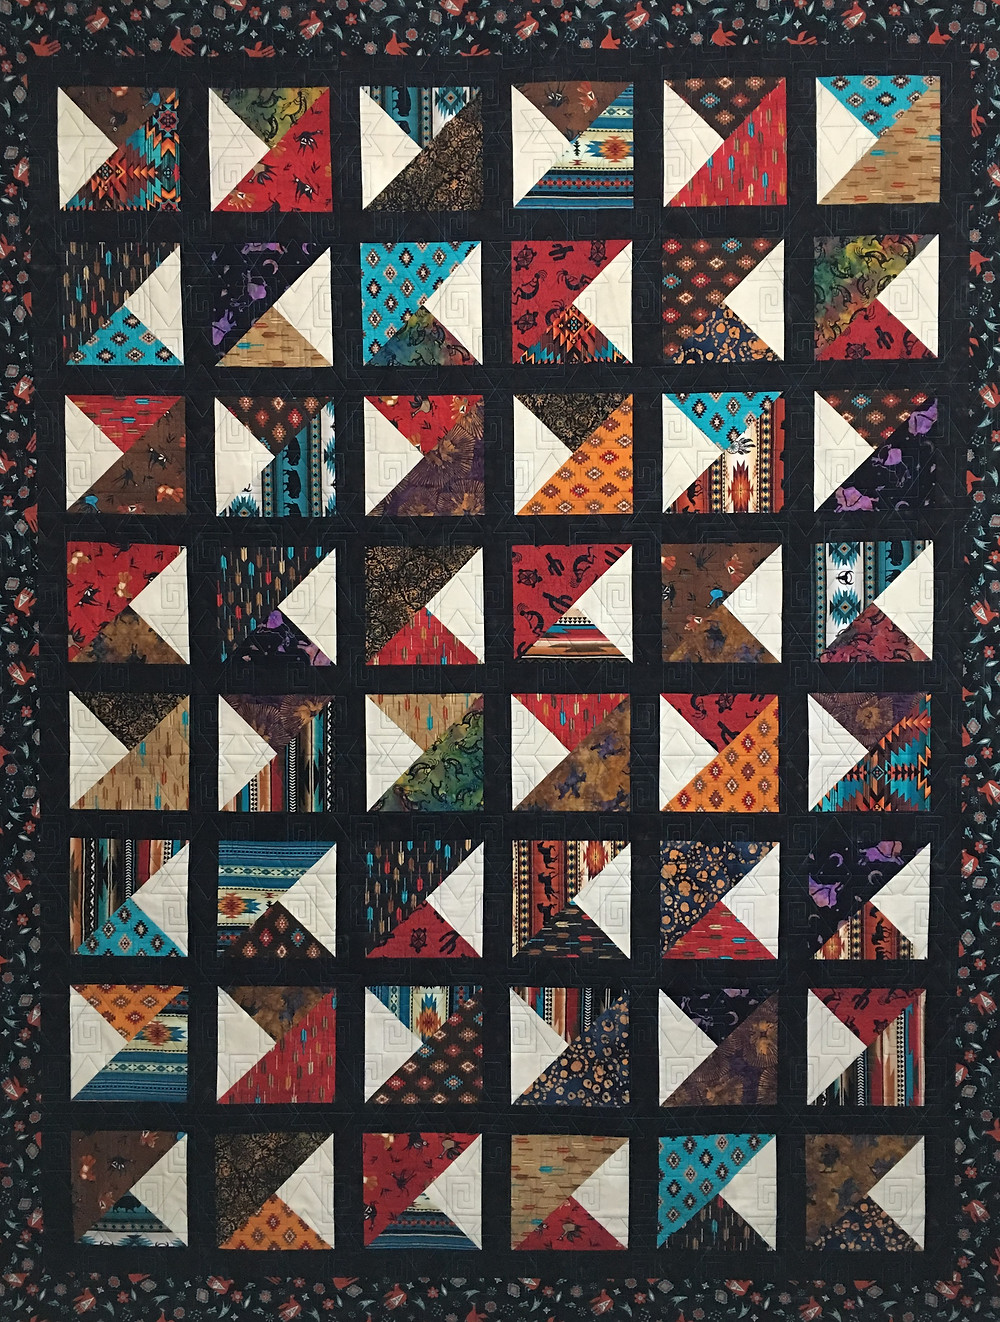 Southwestern Quilt by Terri Manley